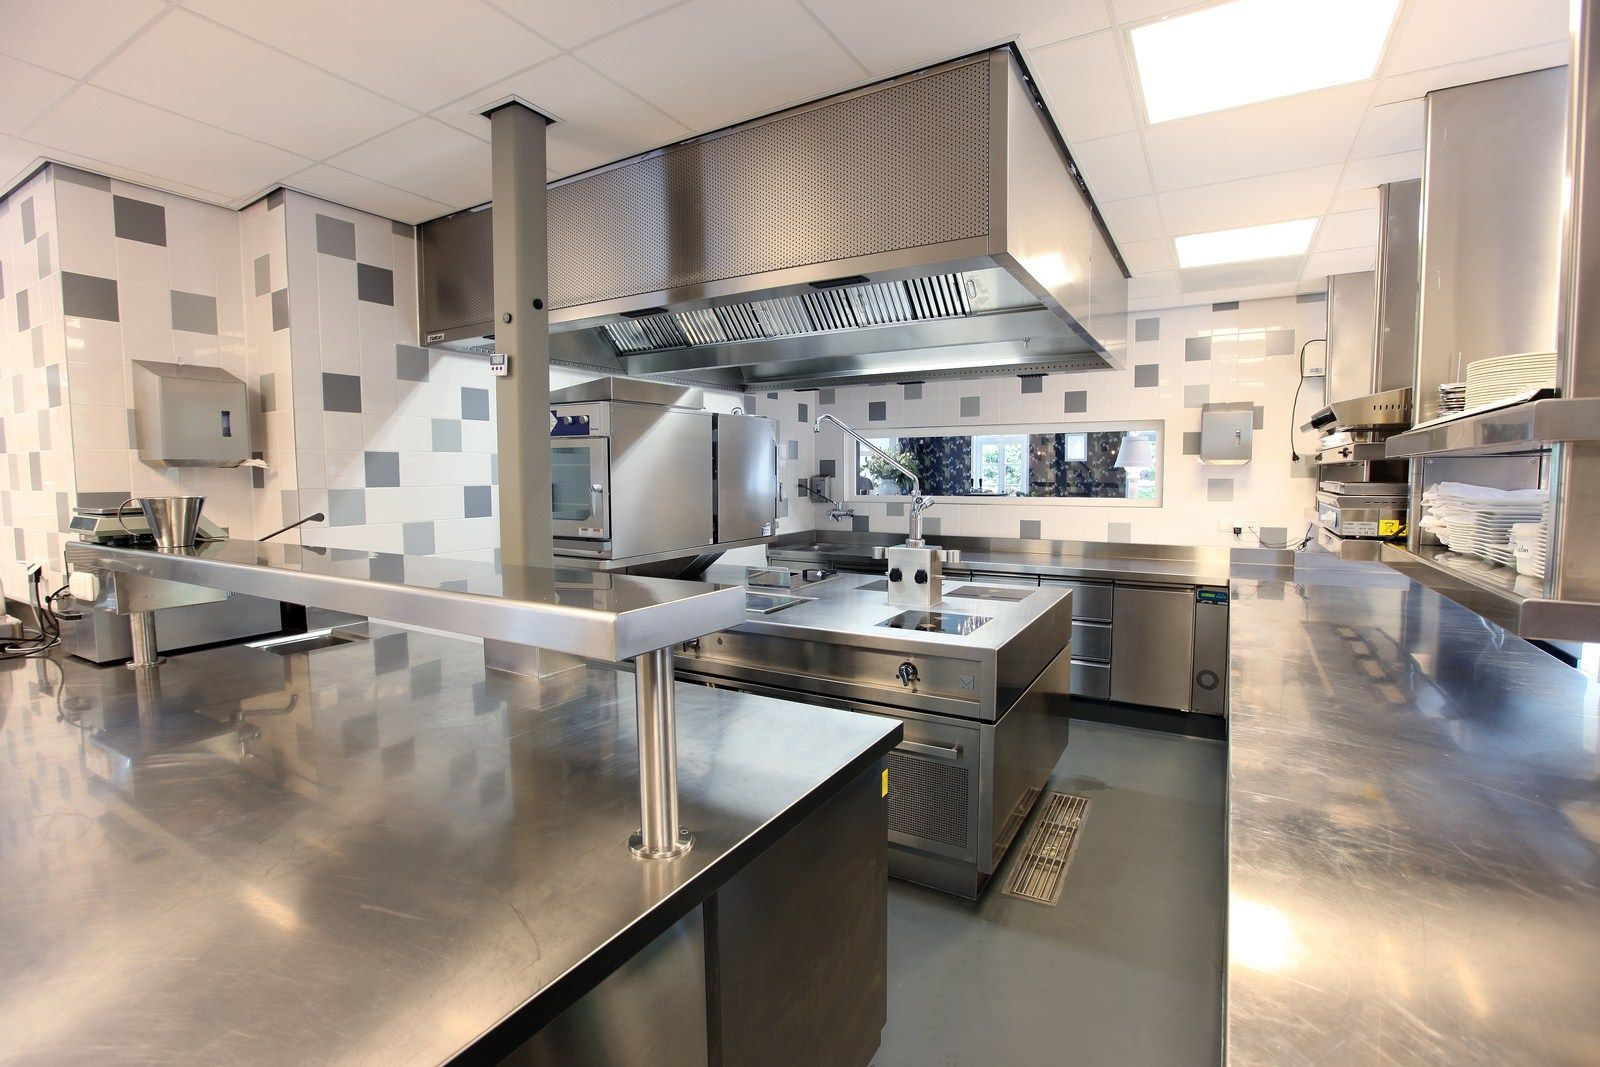 Ceramic Or Stainless Steel Best For Commercial Kitchen